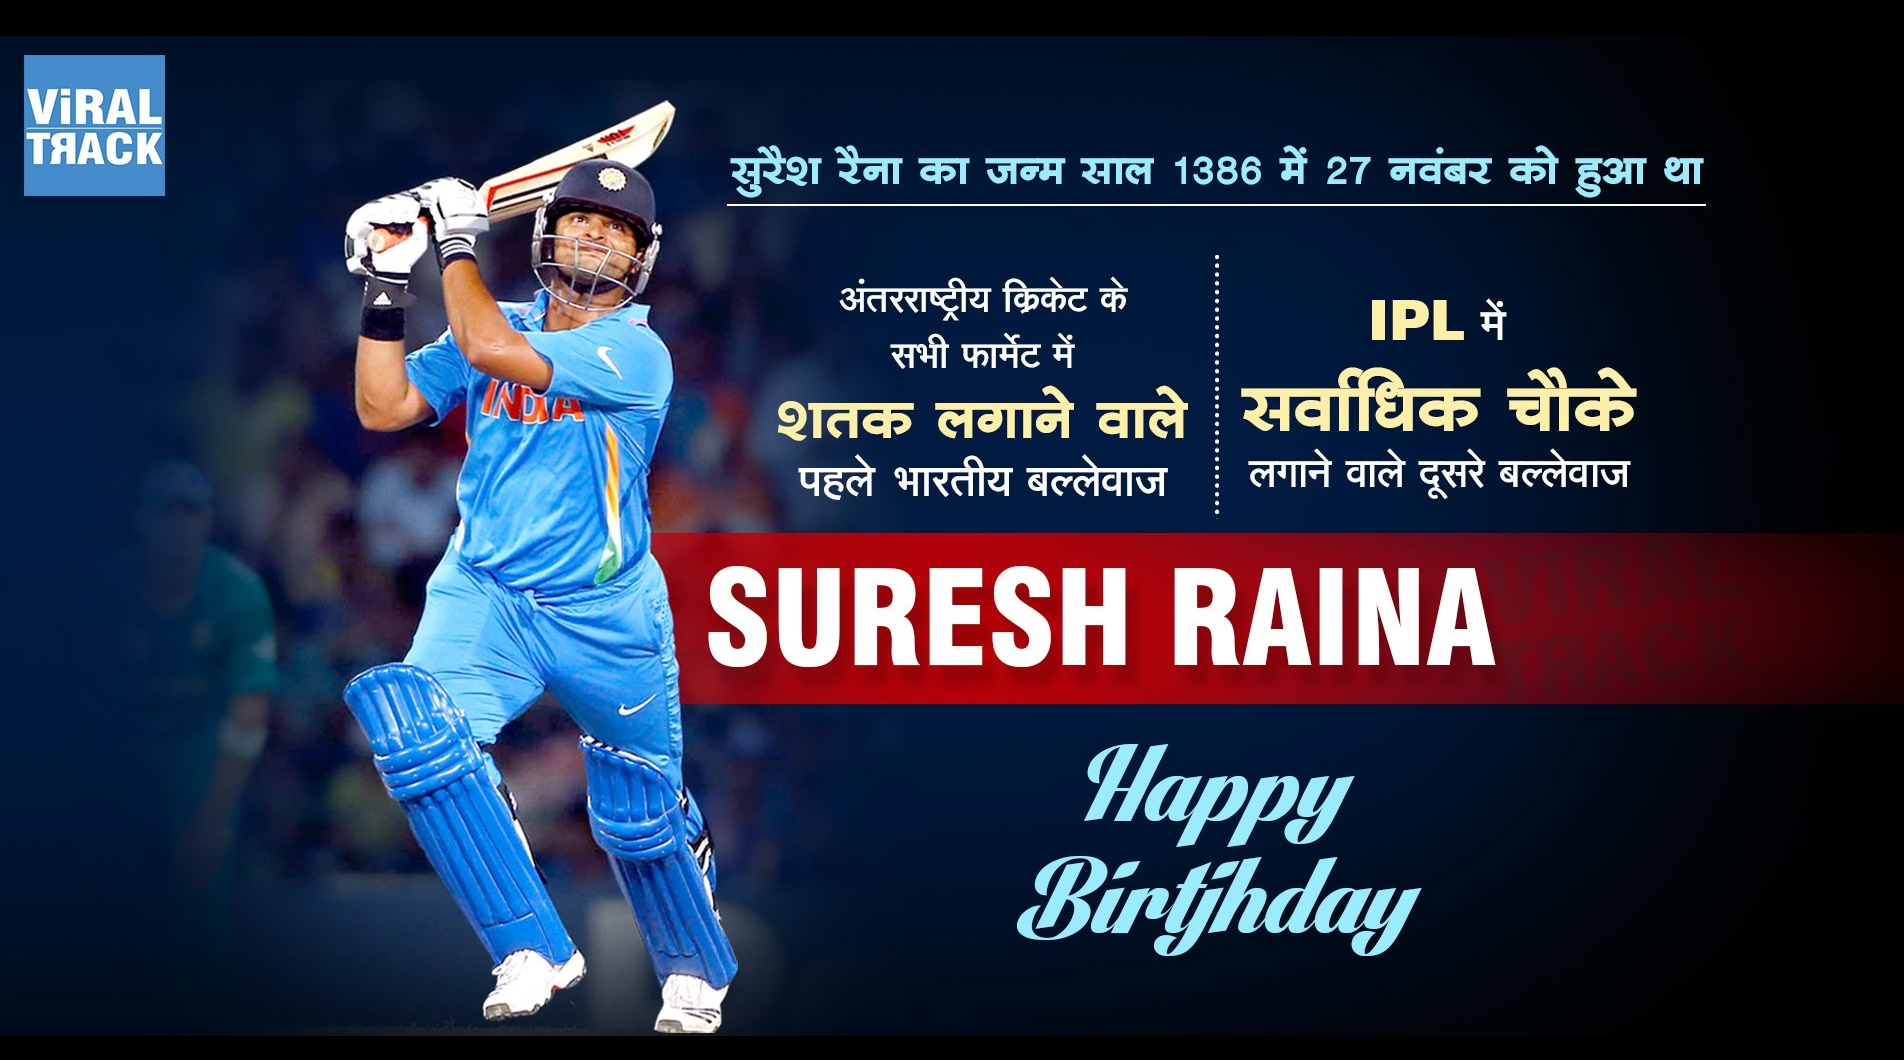 Suresh Raina's 29th birthday